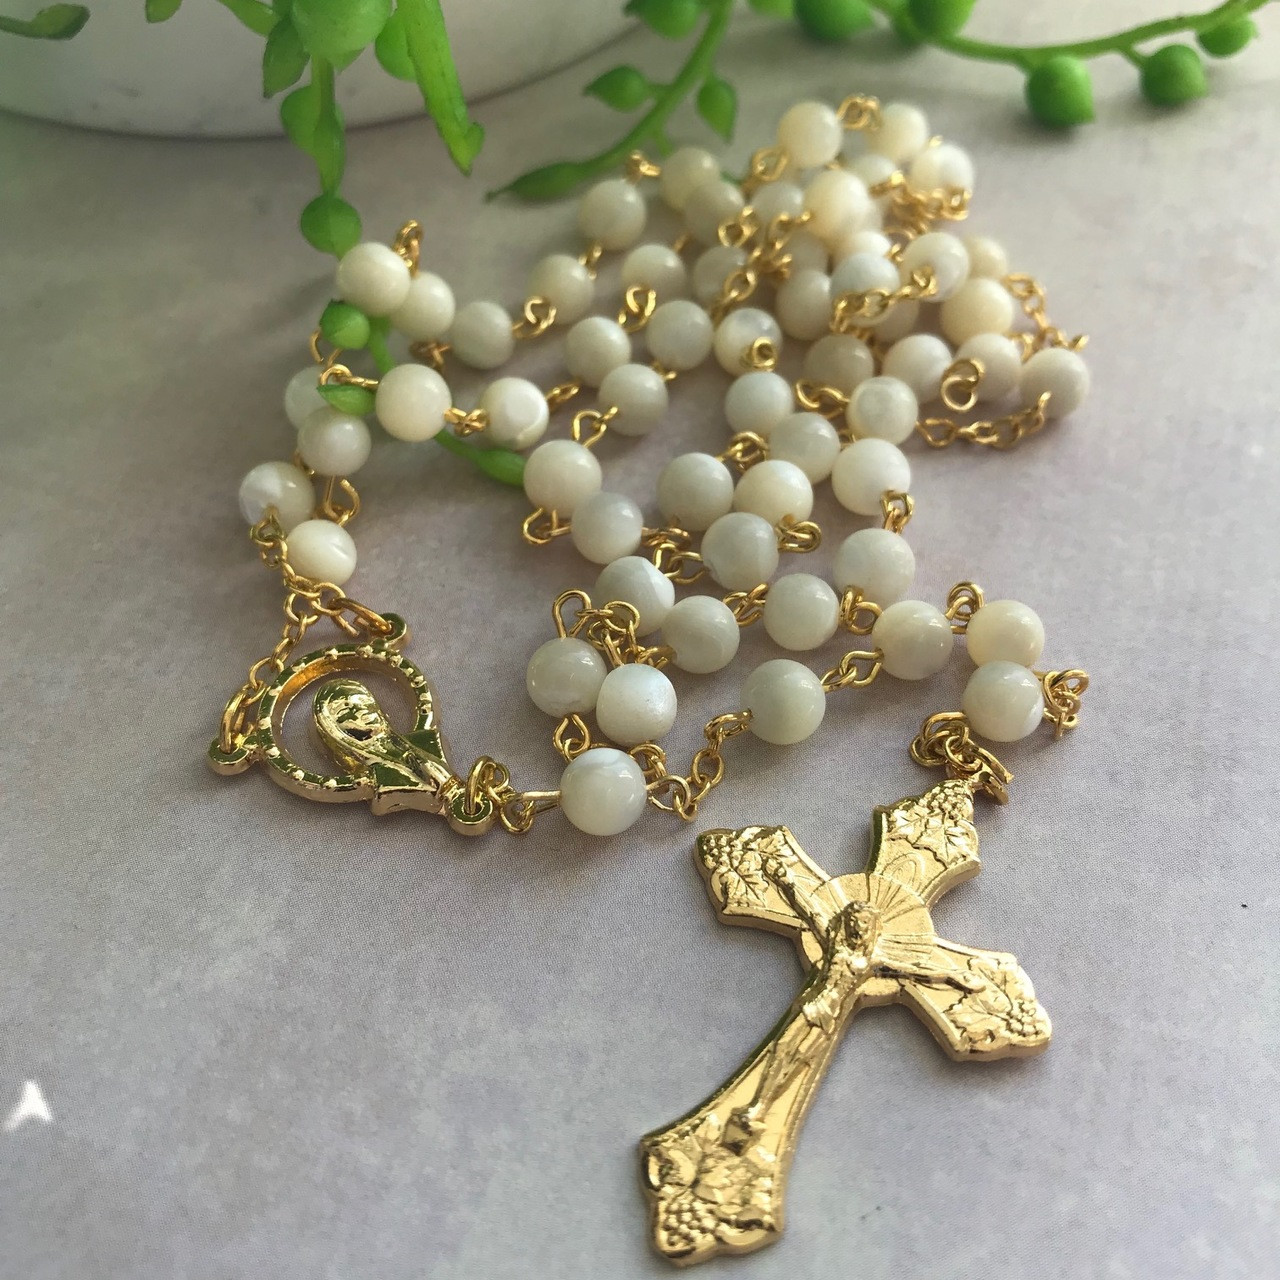 b36b3e700 Gold-Plated and Mother Of Pearl Pearl Rosary Beads By Gifted Memories Faith